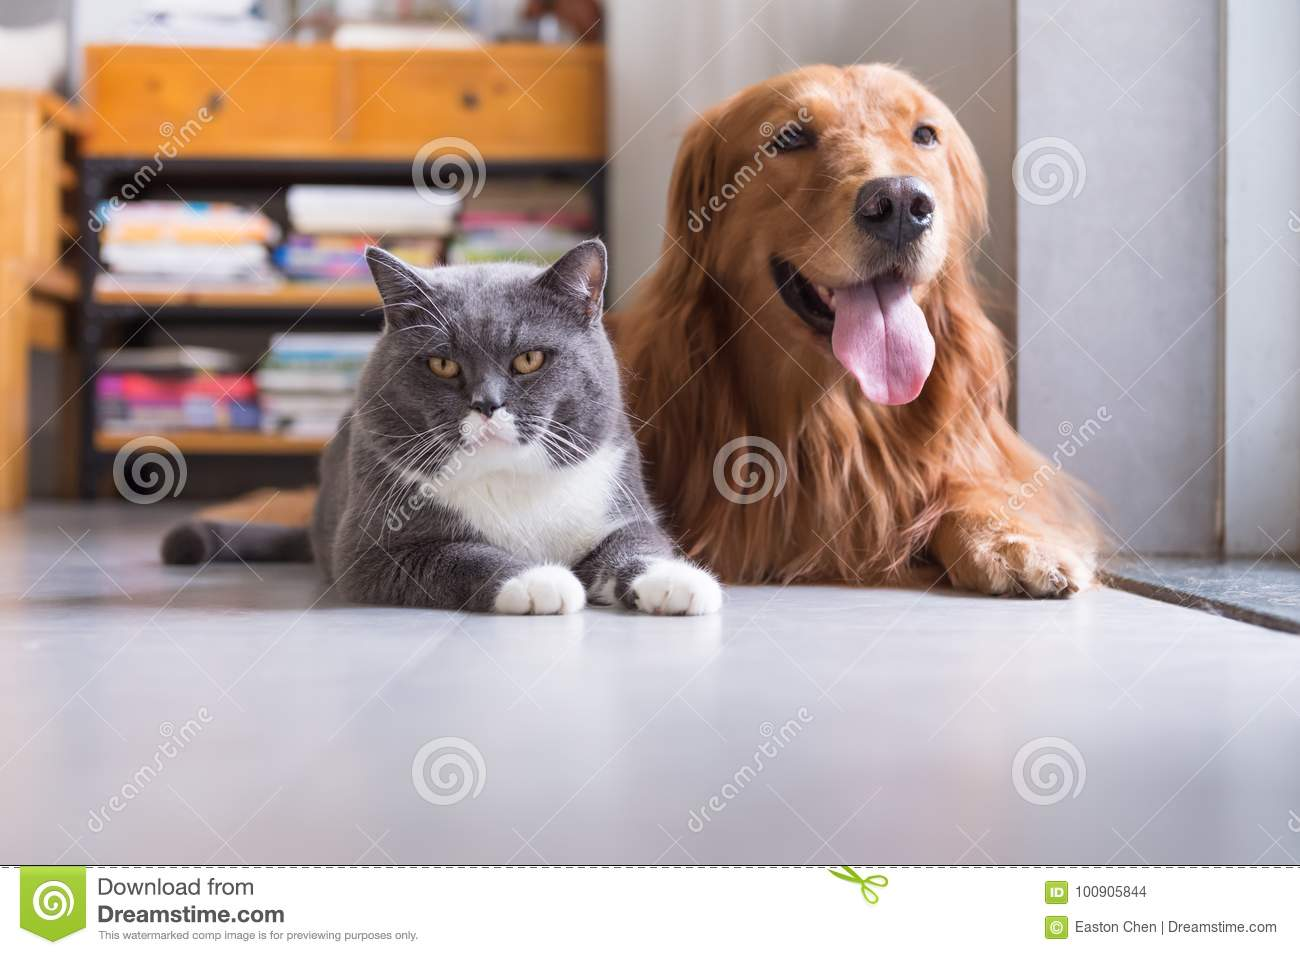 British Shorthair Cats And Golden Retriever Stock Photo - Image of